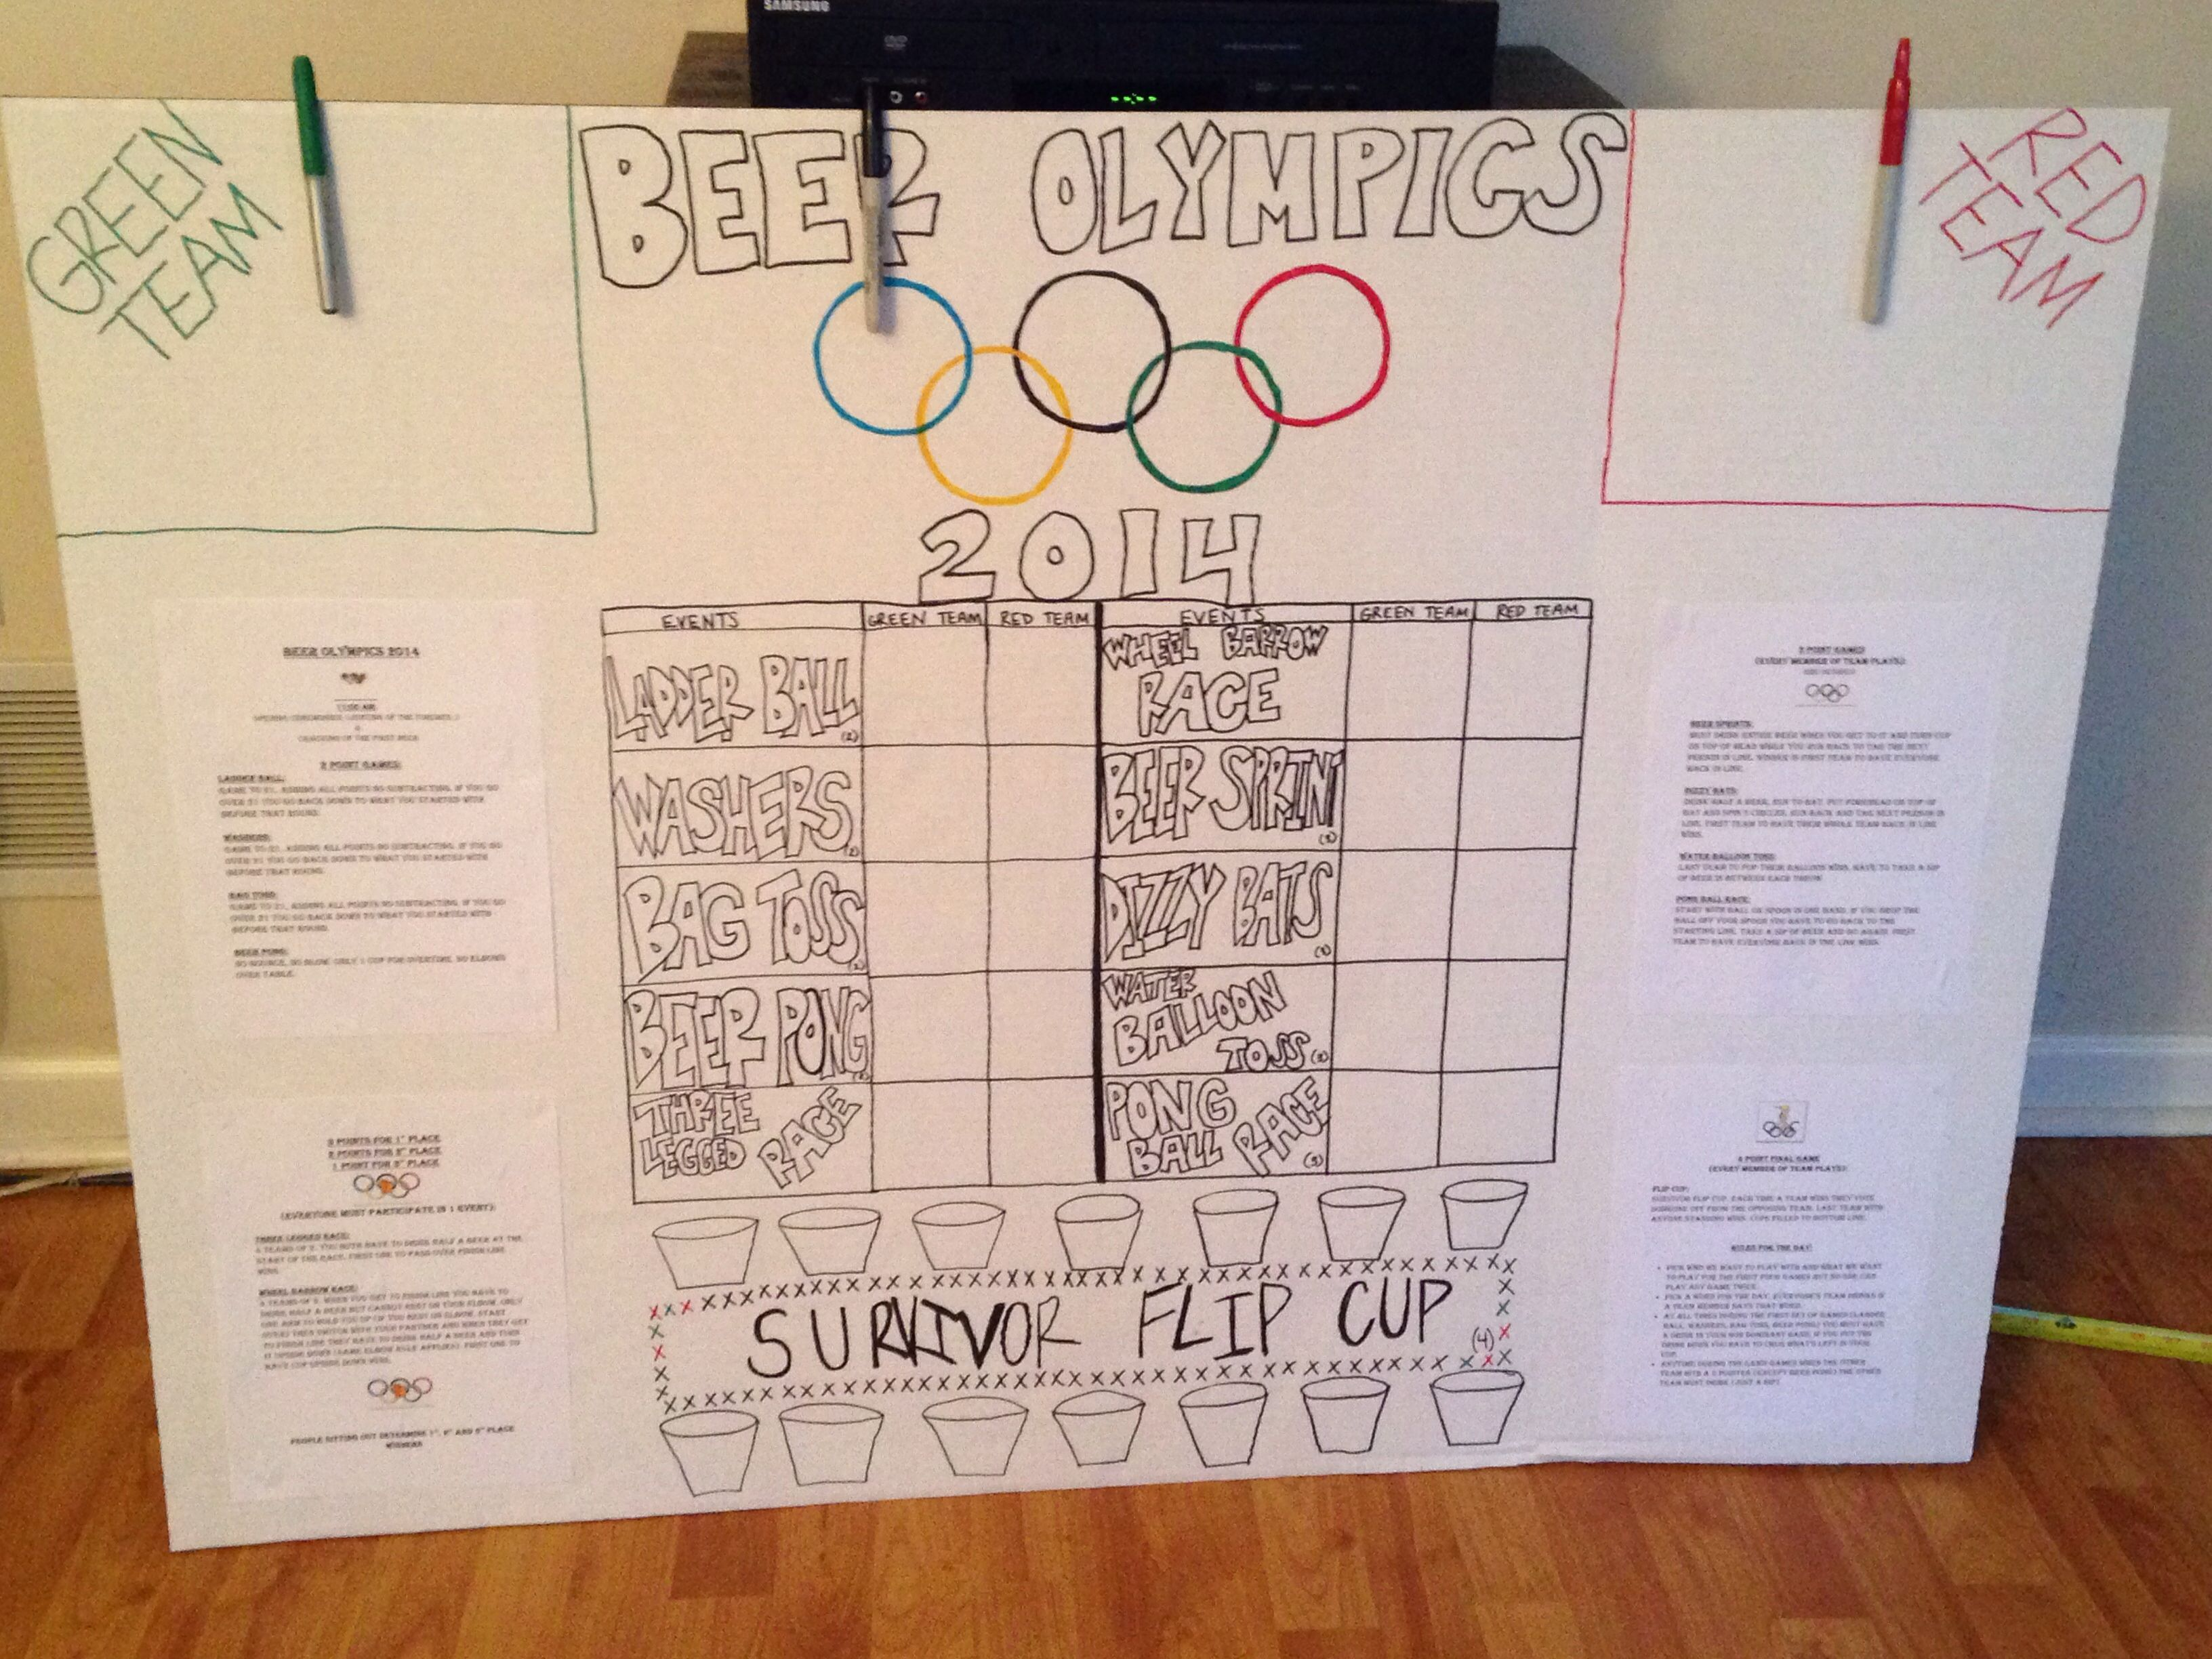 Beer Olympics simple way to manage teams w/no brackets